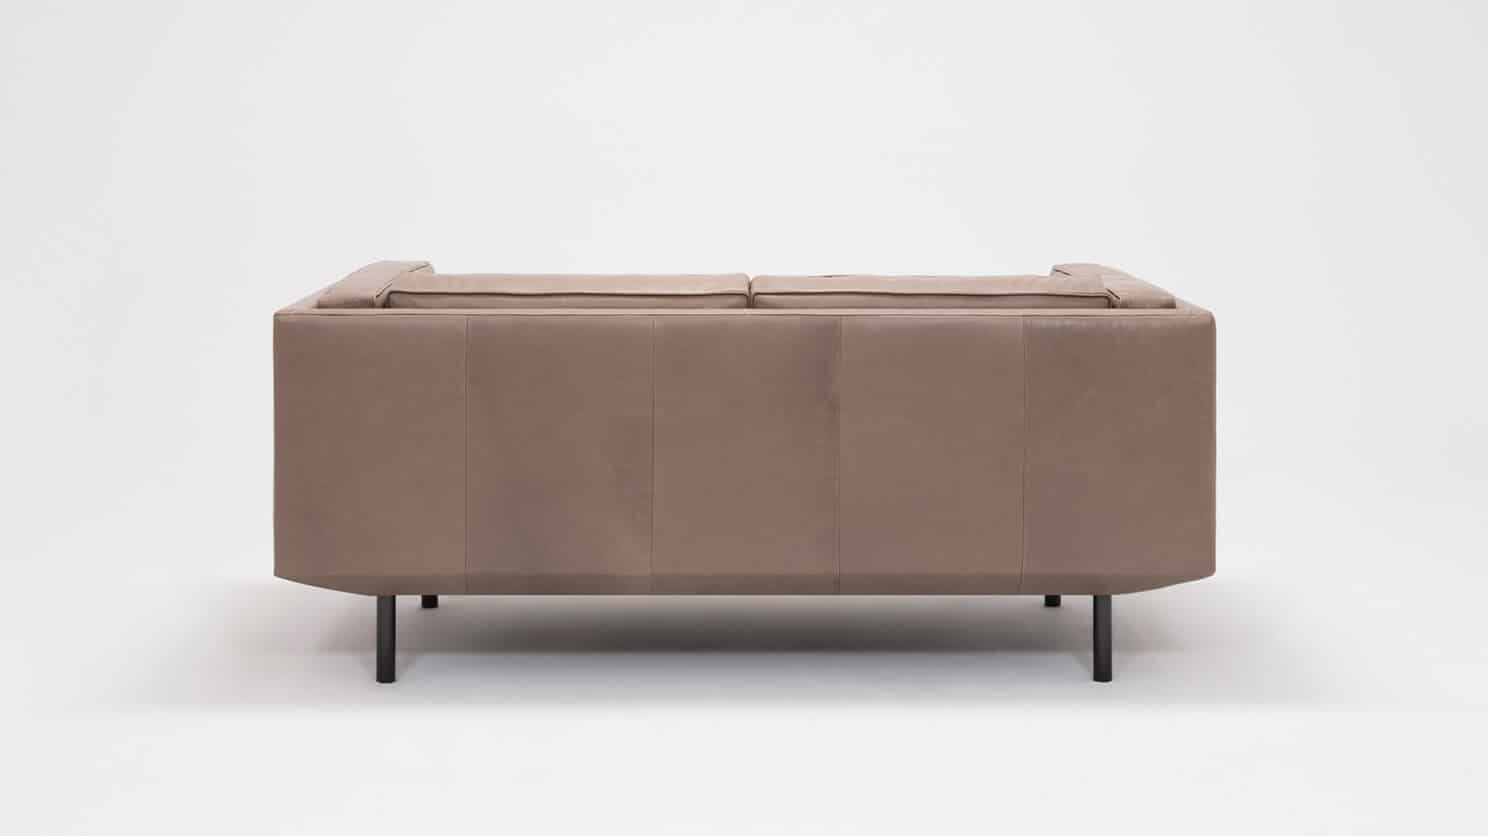 37154 03 05 loveseat plateau feather coachella smoke back view